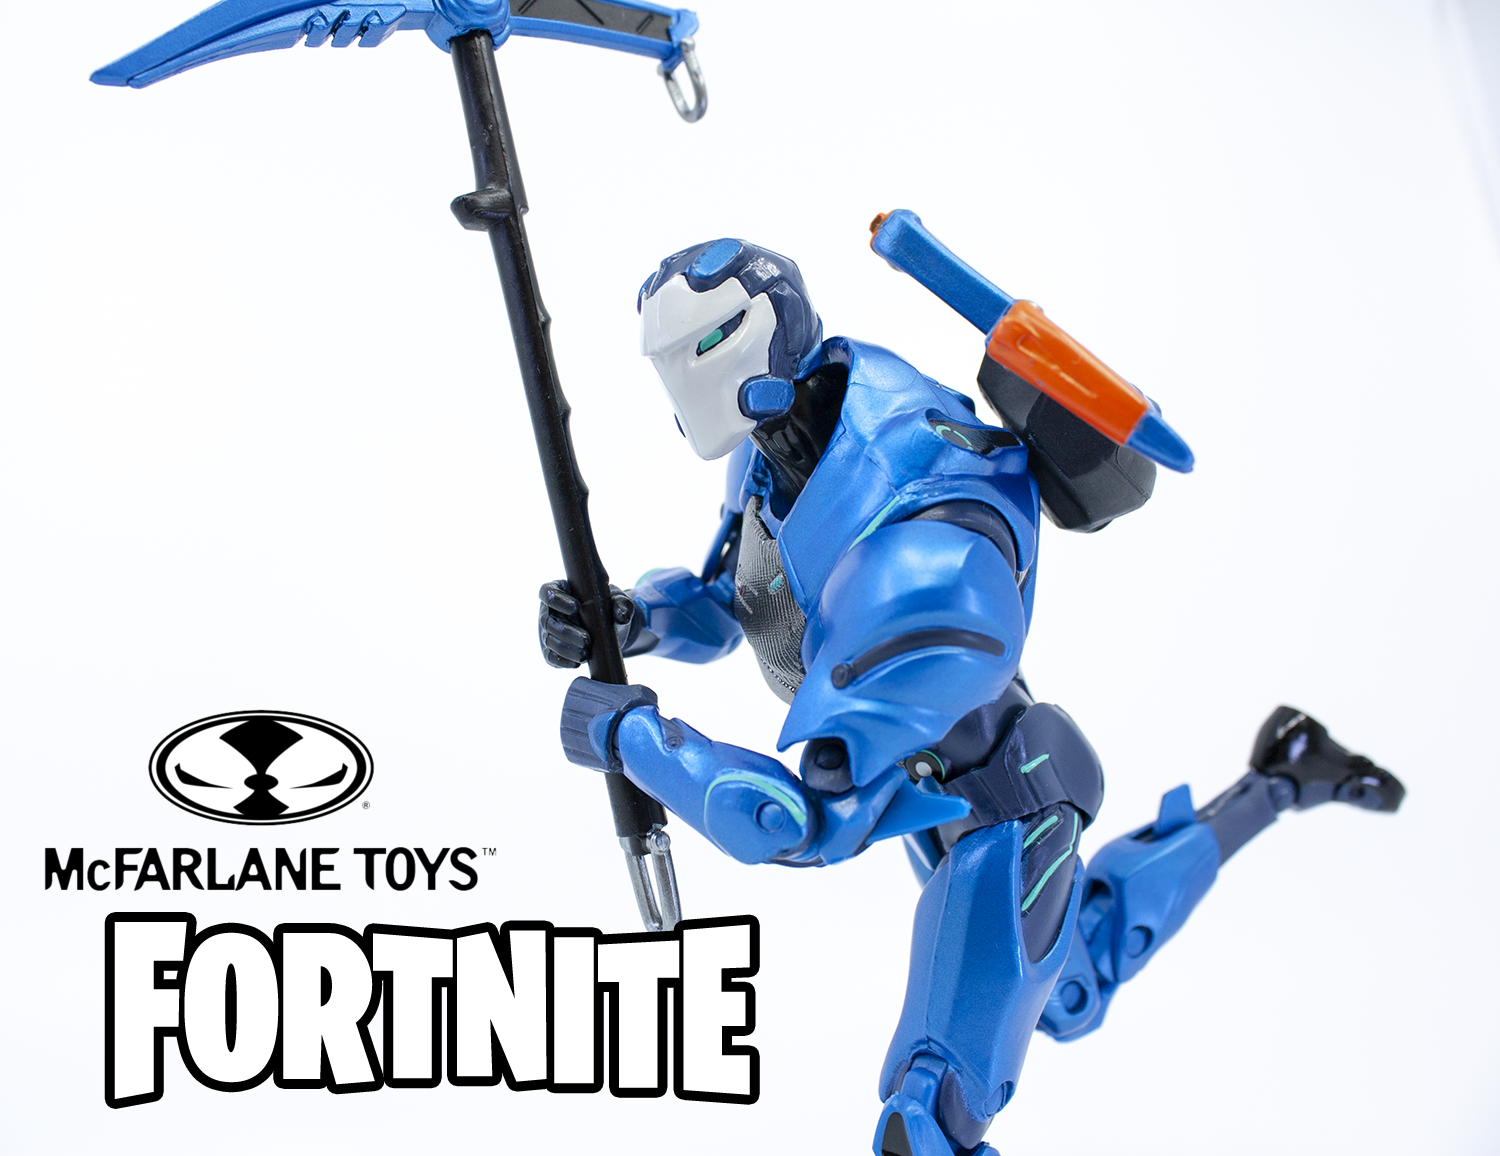 McFarlane Toys Fortnite 7-inch Carbide Review